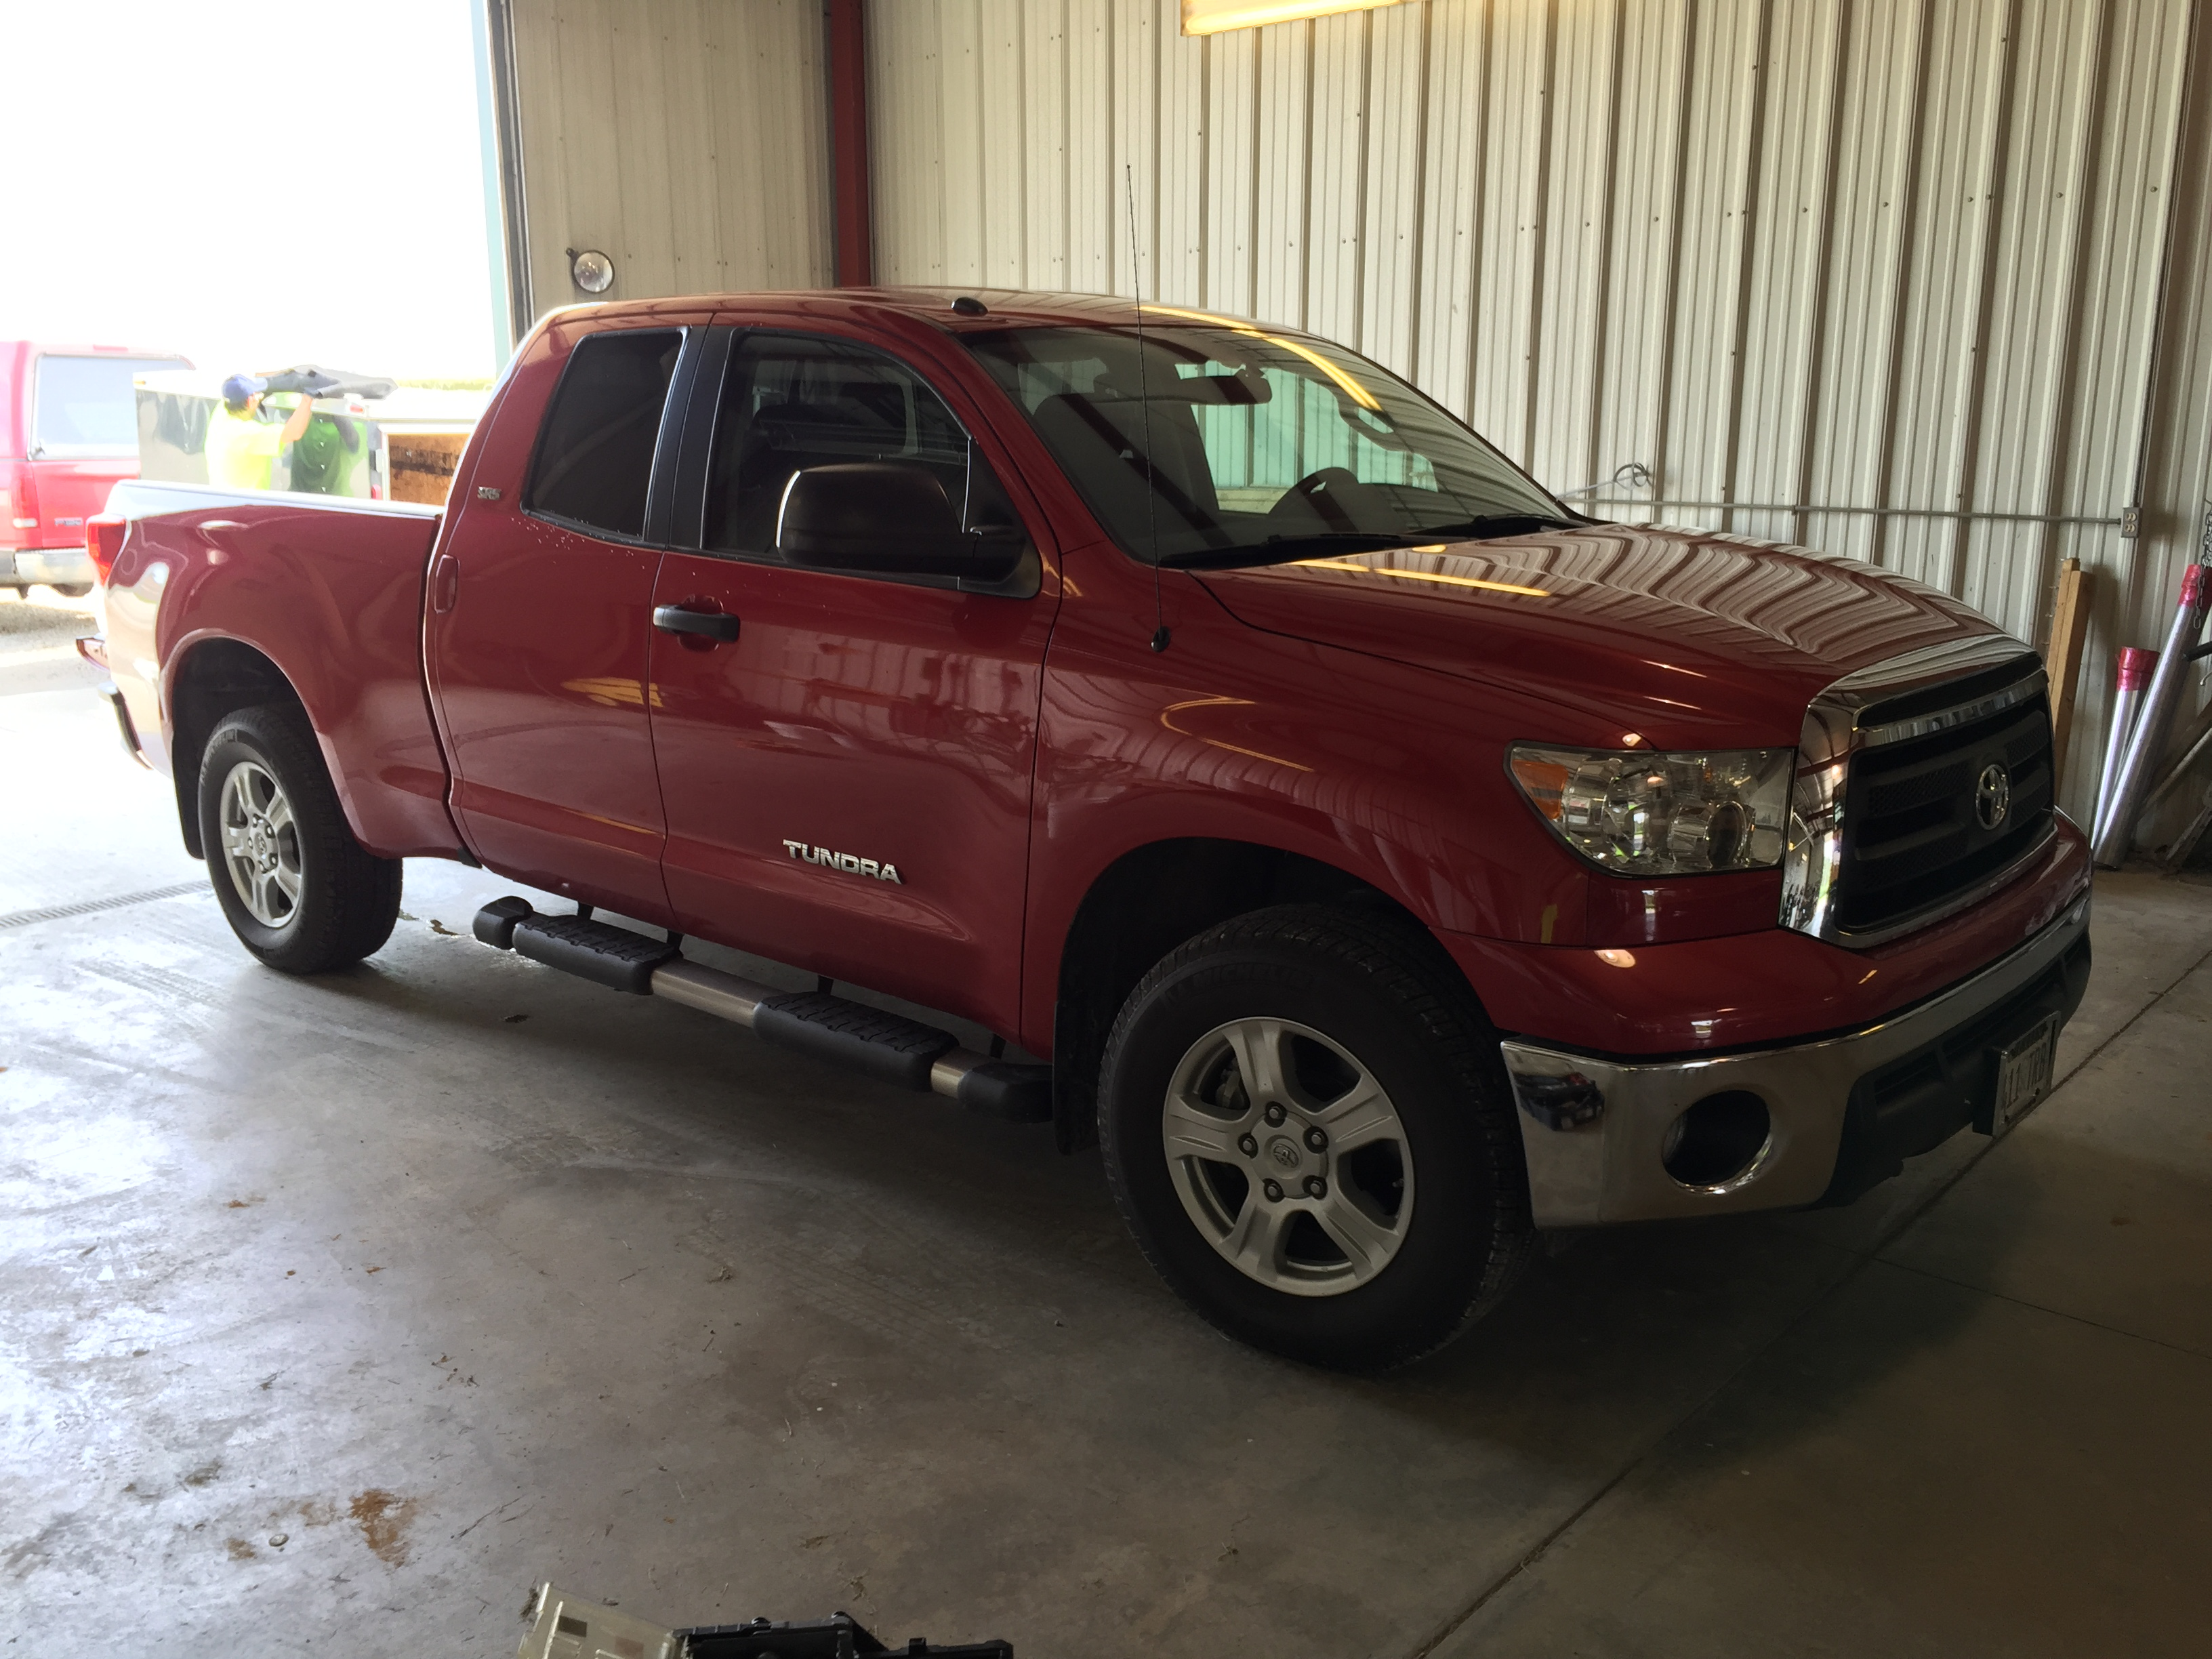 2010 Toyota Tundra, Hail Damage Removal by Michael Bocek out of Springfield, IL, Mobile Dent Repair, Mobile Hail Repair, Paintless dent removal, Springfield, IL, Decatur IL, Athens, IL, Bloomington, IL. http://217dent.com